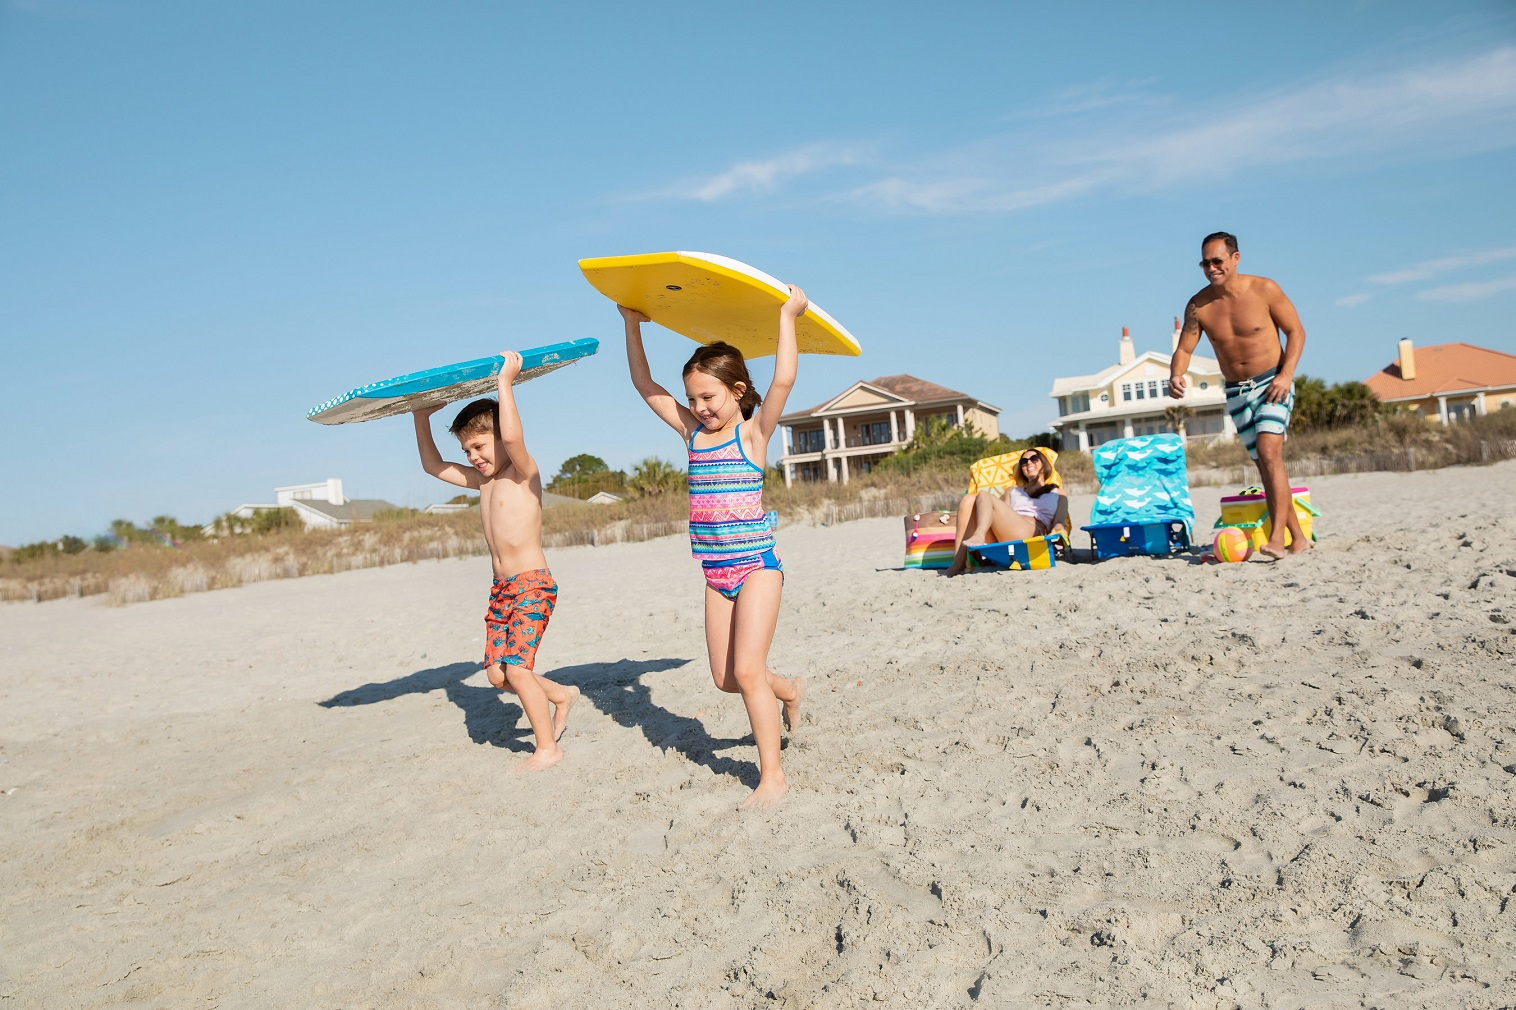 As Covid-19 restrictions loosen across the United States, Visit Myrtle Beach is driving economic recovery along the Grand Strand with a new brand and marketing campaign beginning this week.